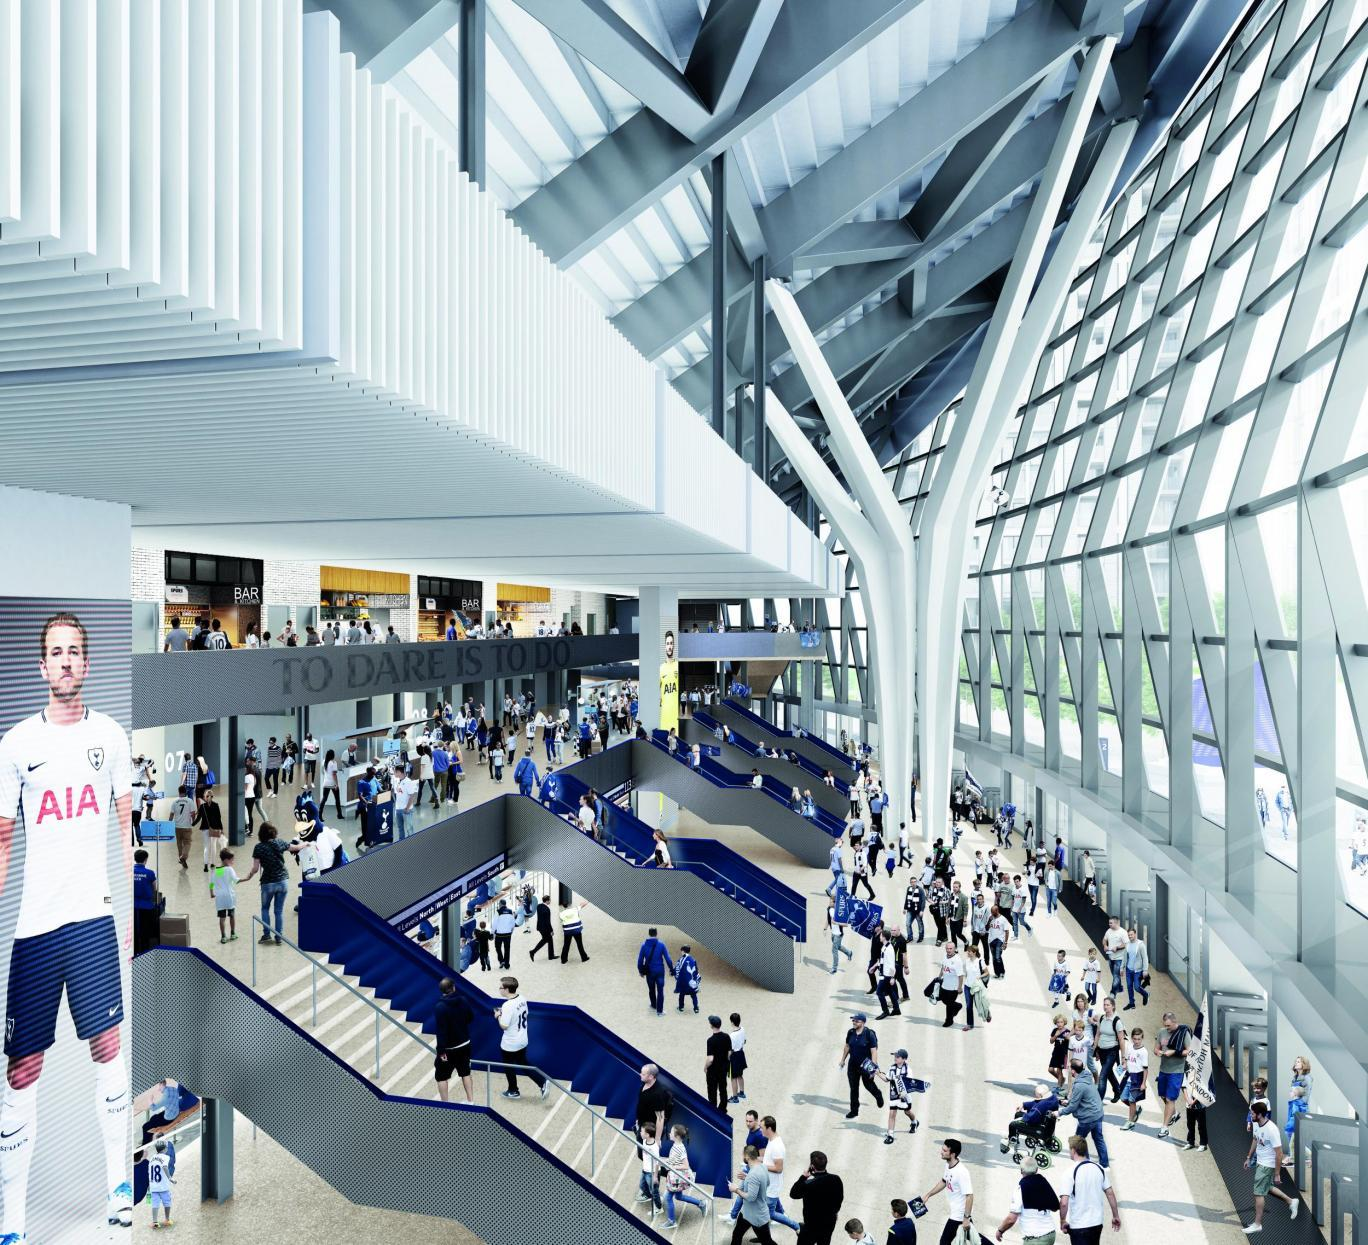 Sports and arena architects Populous, who have created several of the UK's best-known football grounds, are behind the designs / Tottenham Hotspur